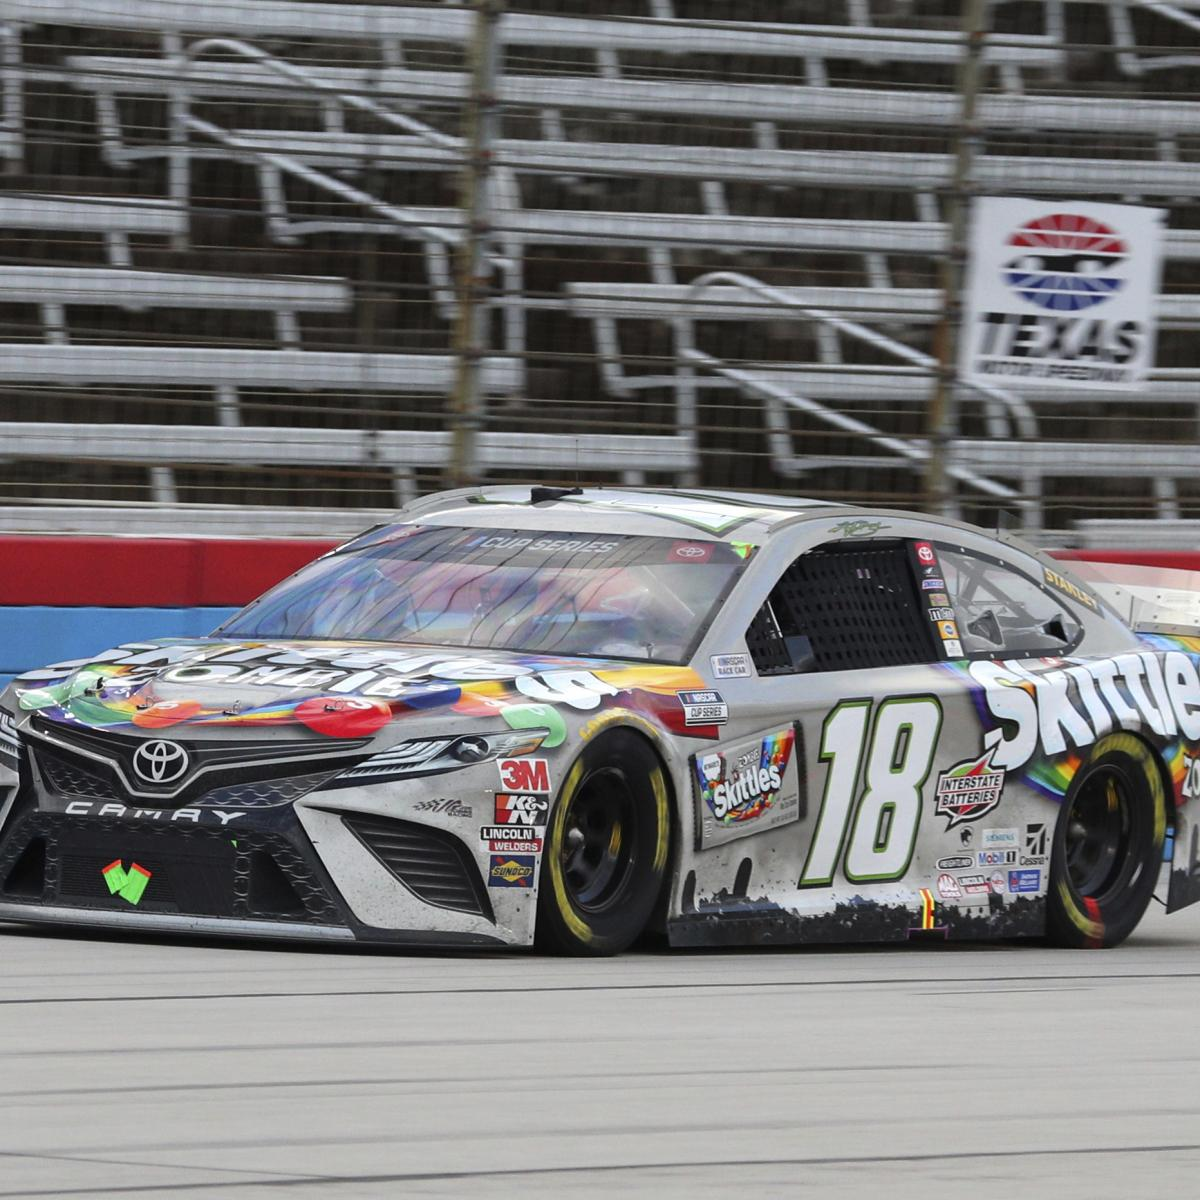 NASCAR at Texas 2020 Results: Kyle Busch Snaps Drought, Earns 1st Win of Season